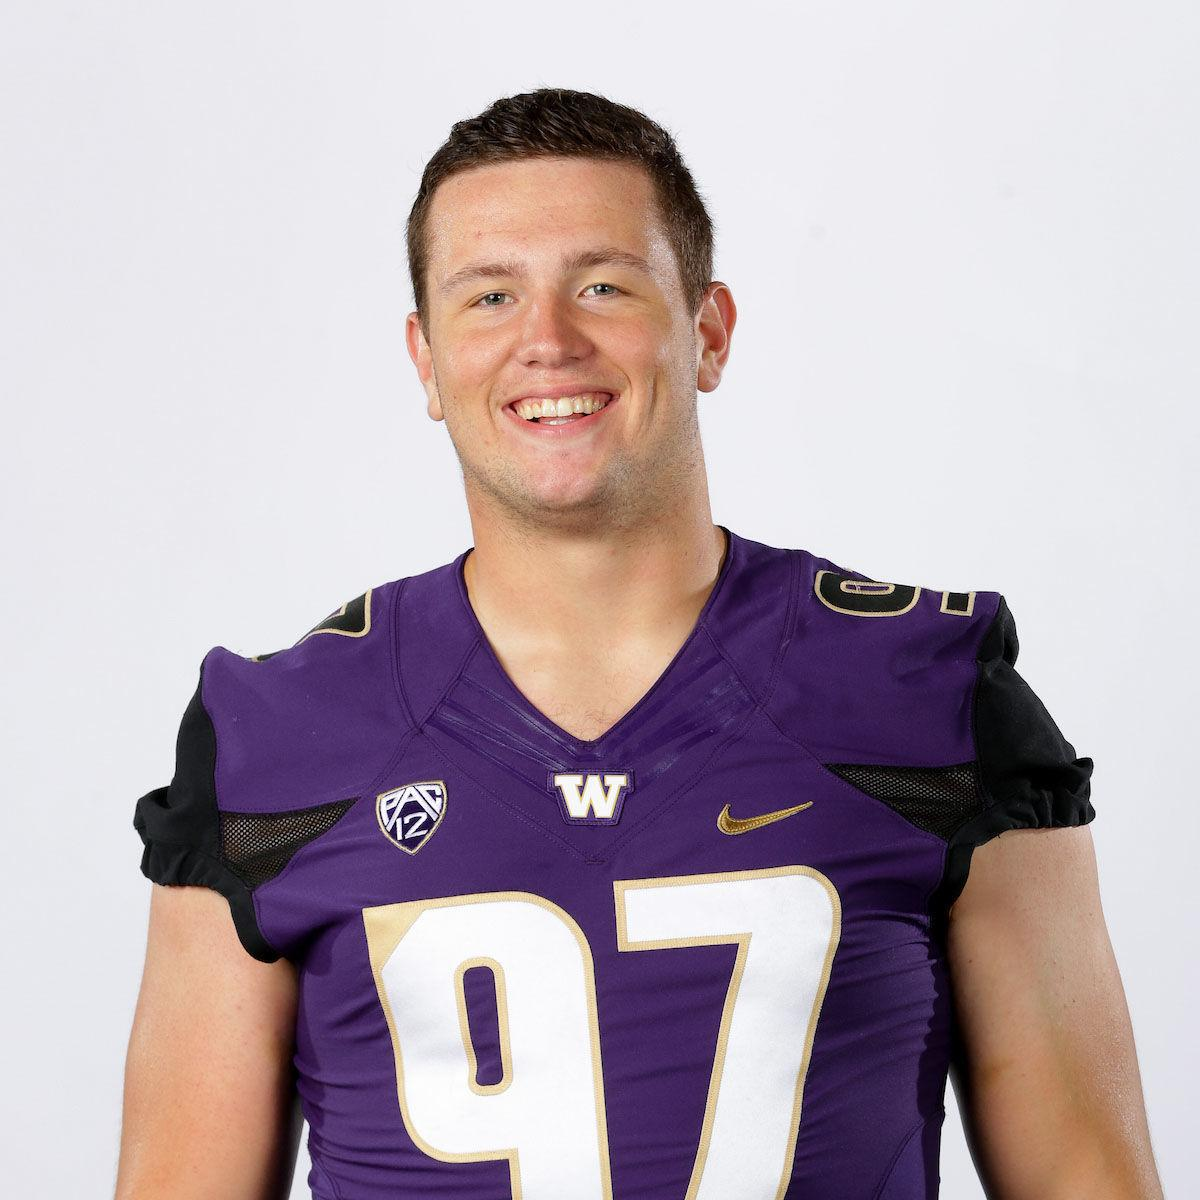 2017 University of Washington football head shot